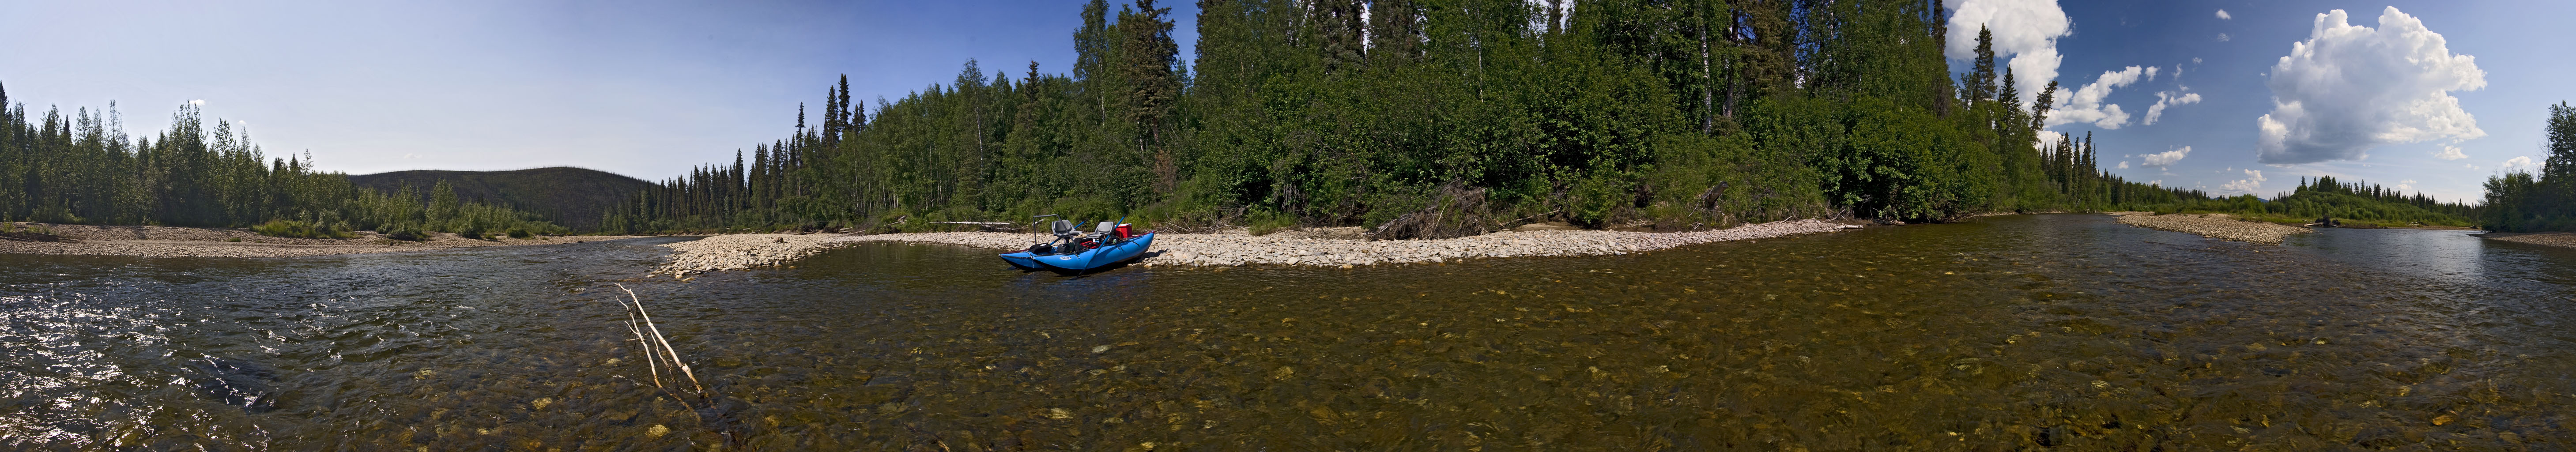 Here's a panorama of the junction of the North Fork of the Chena River and Middle Fork of the Chena River, where we my dad and I spent some time fishing for Arctic grayling on this float trip. From the Chena River in Alaska.